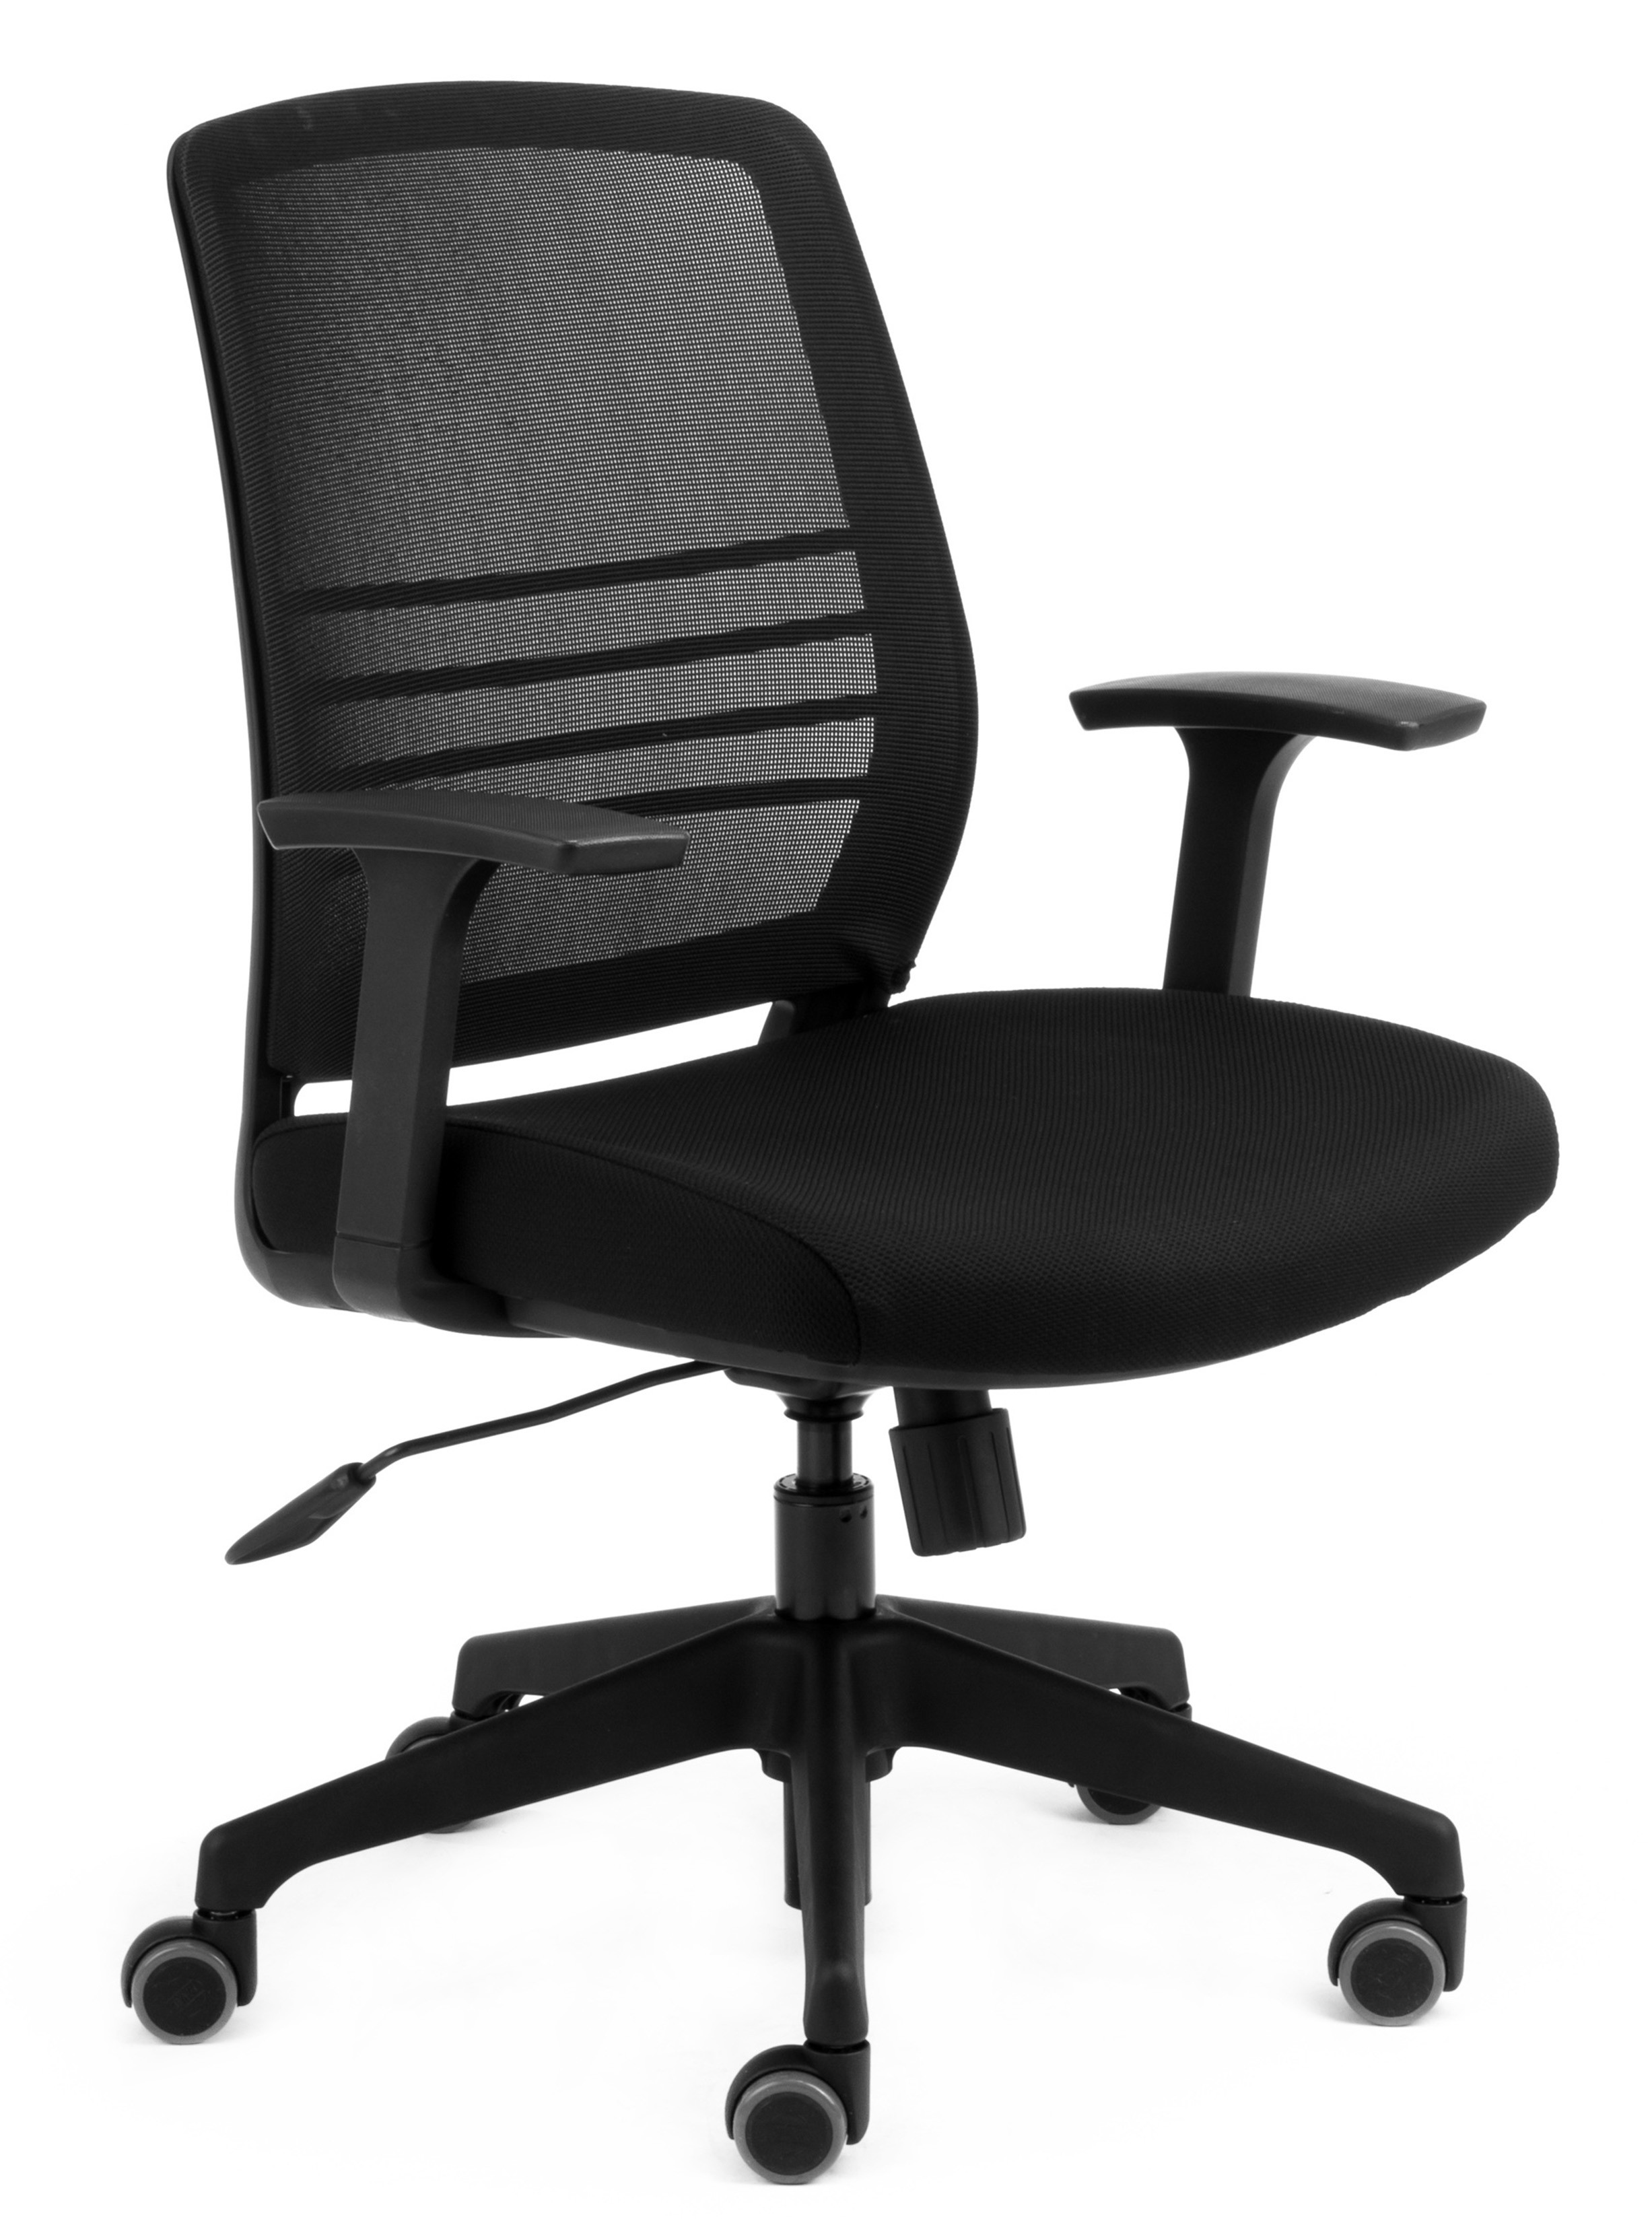 Cobi Mesh Chair fice Furniture Desk Chairs Task Seating